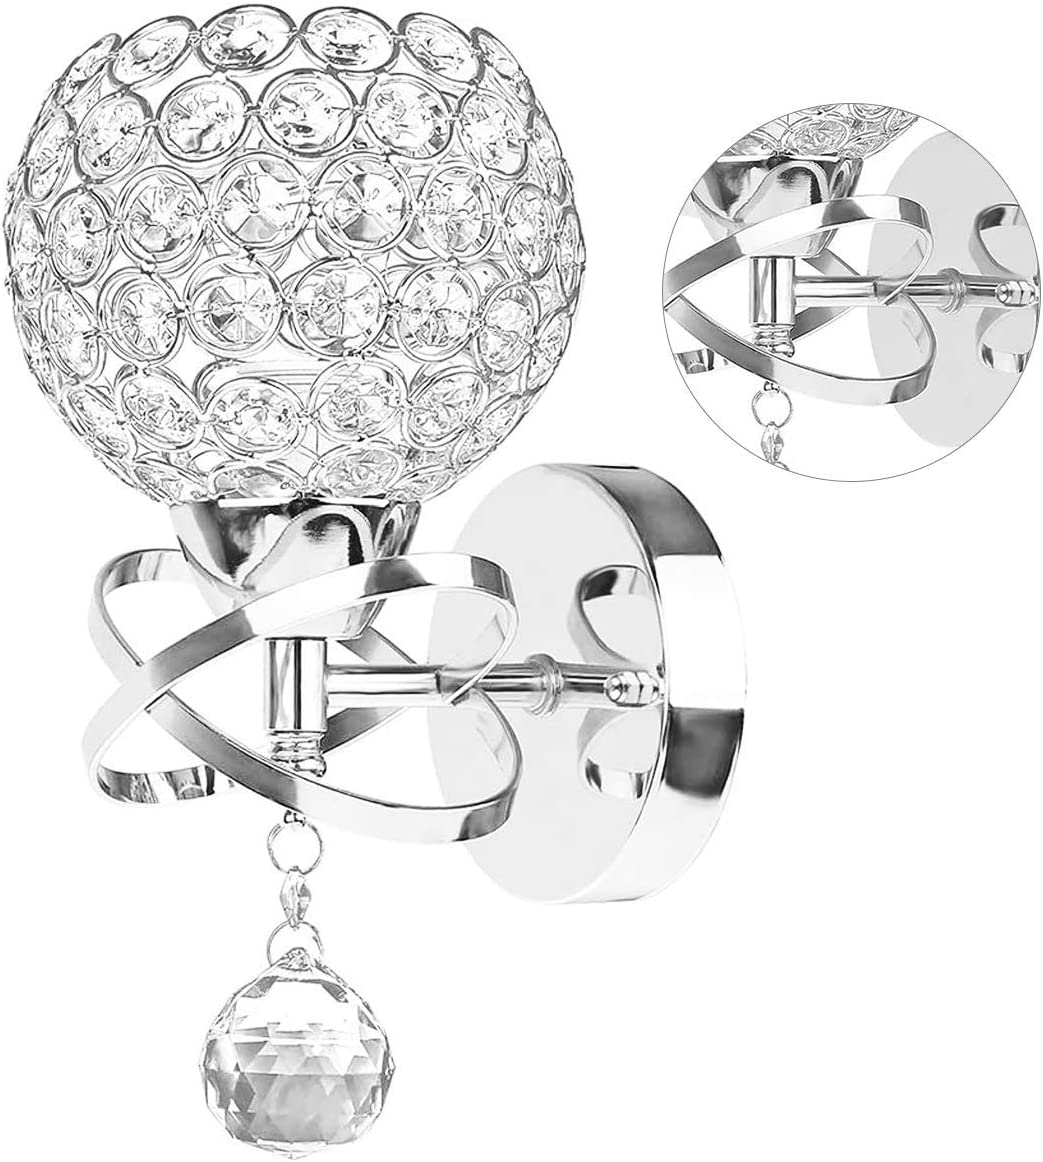 Crystal Wall Sconce, Modern Wall Light Sconces Wall Lighting with Hanging Crystal Ball, Wall Mount Lamp Bedside Wall Lamp Silver Sconces Wall Decor for Bedroom Living Room Hallway